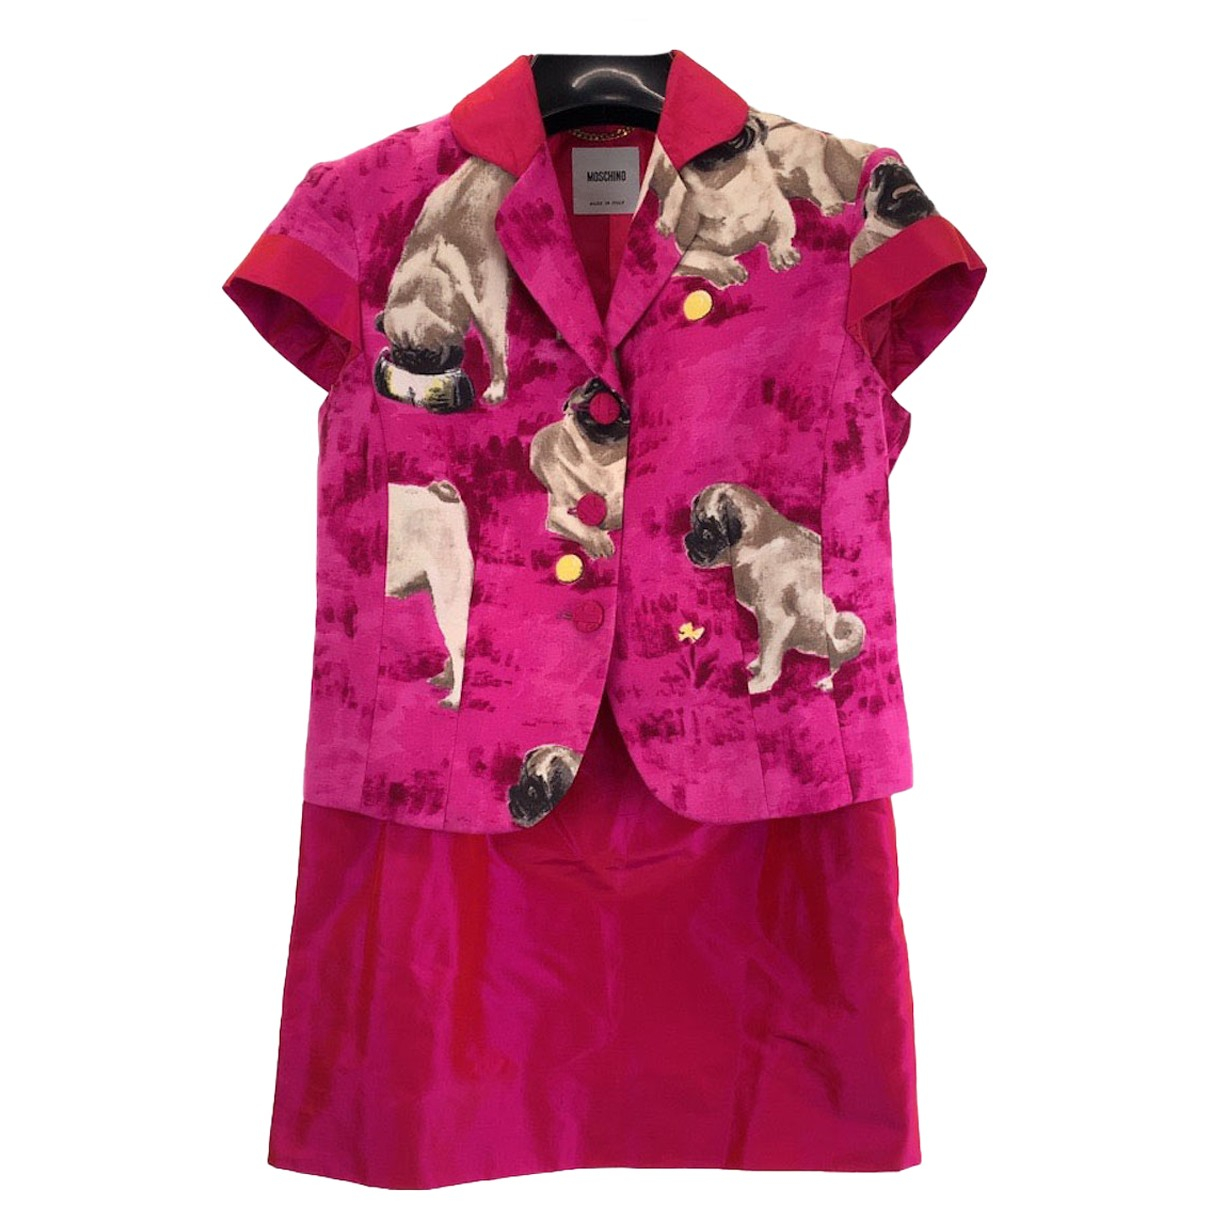 Moschino N Pink jacket for Women One Size 0-5